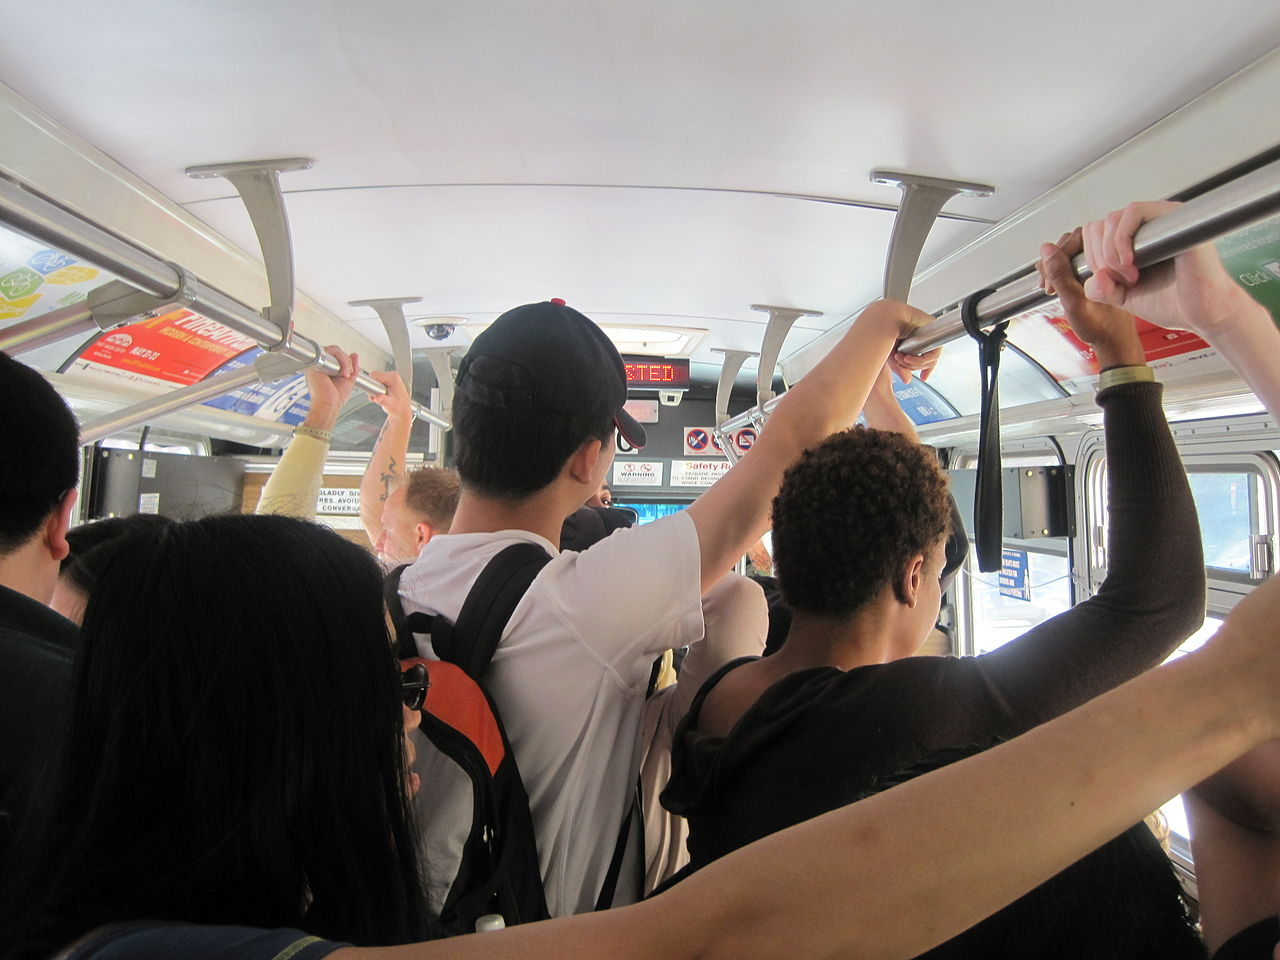 """The """"crowded bus effect"""": Interior design mistake."""